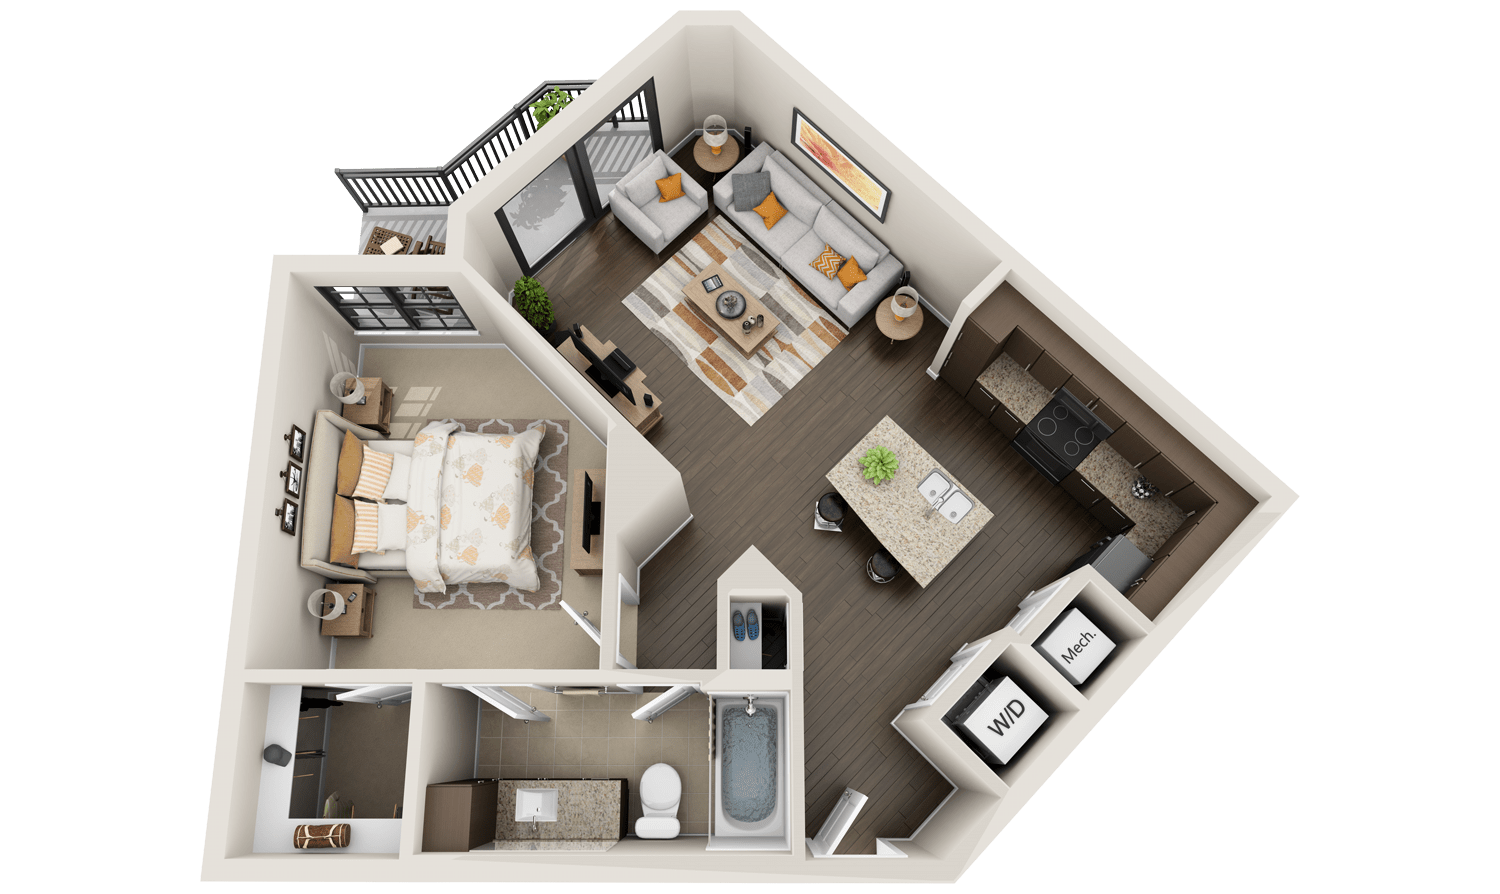 3d Planer Best 3d Floor Plans For Apartments Gt Virtual Tours Gt We